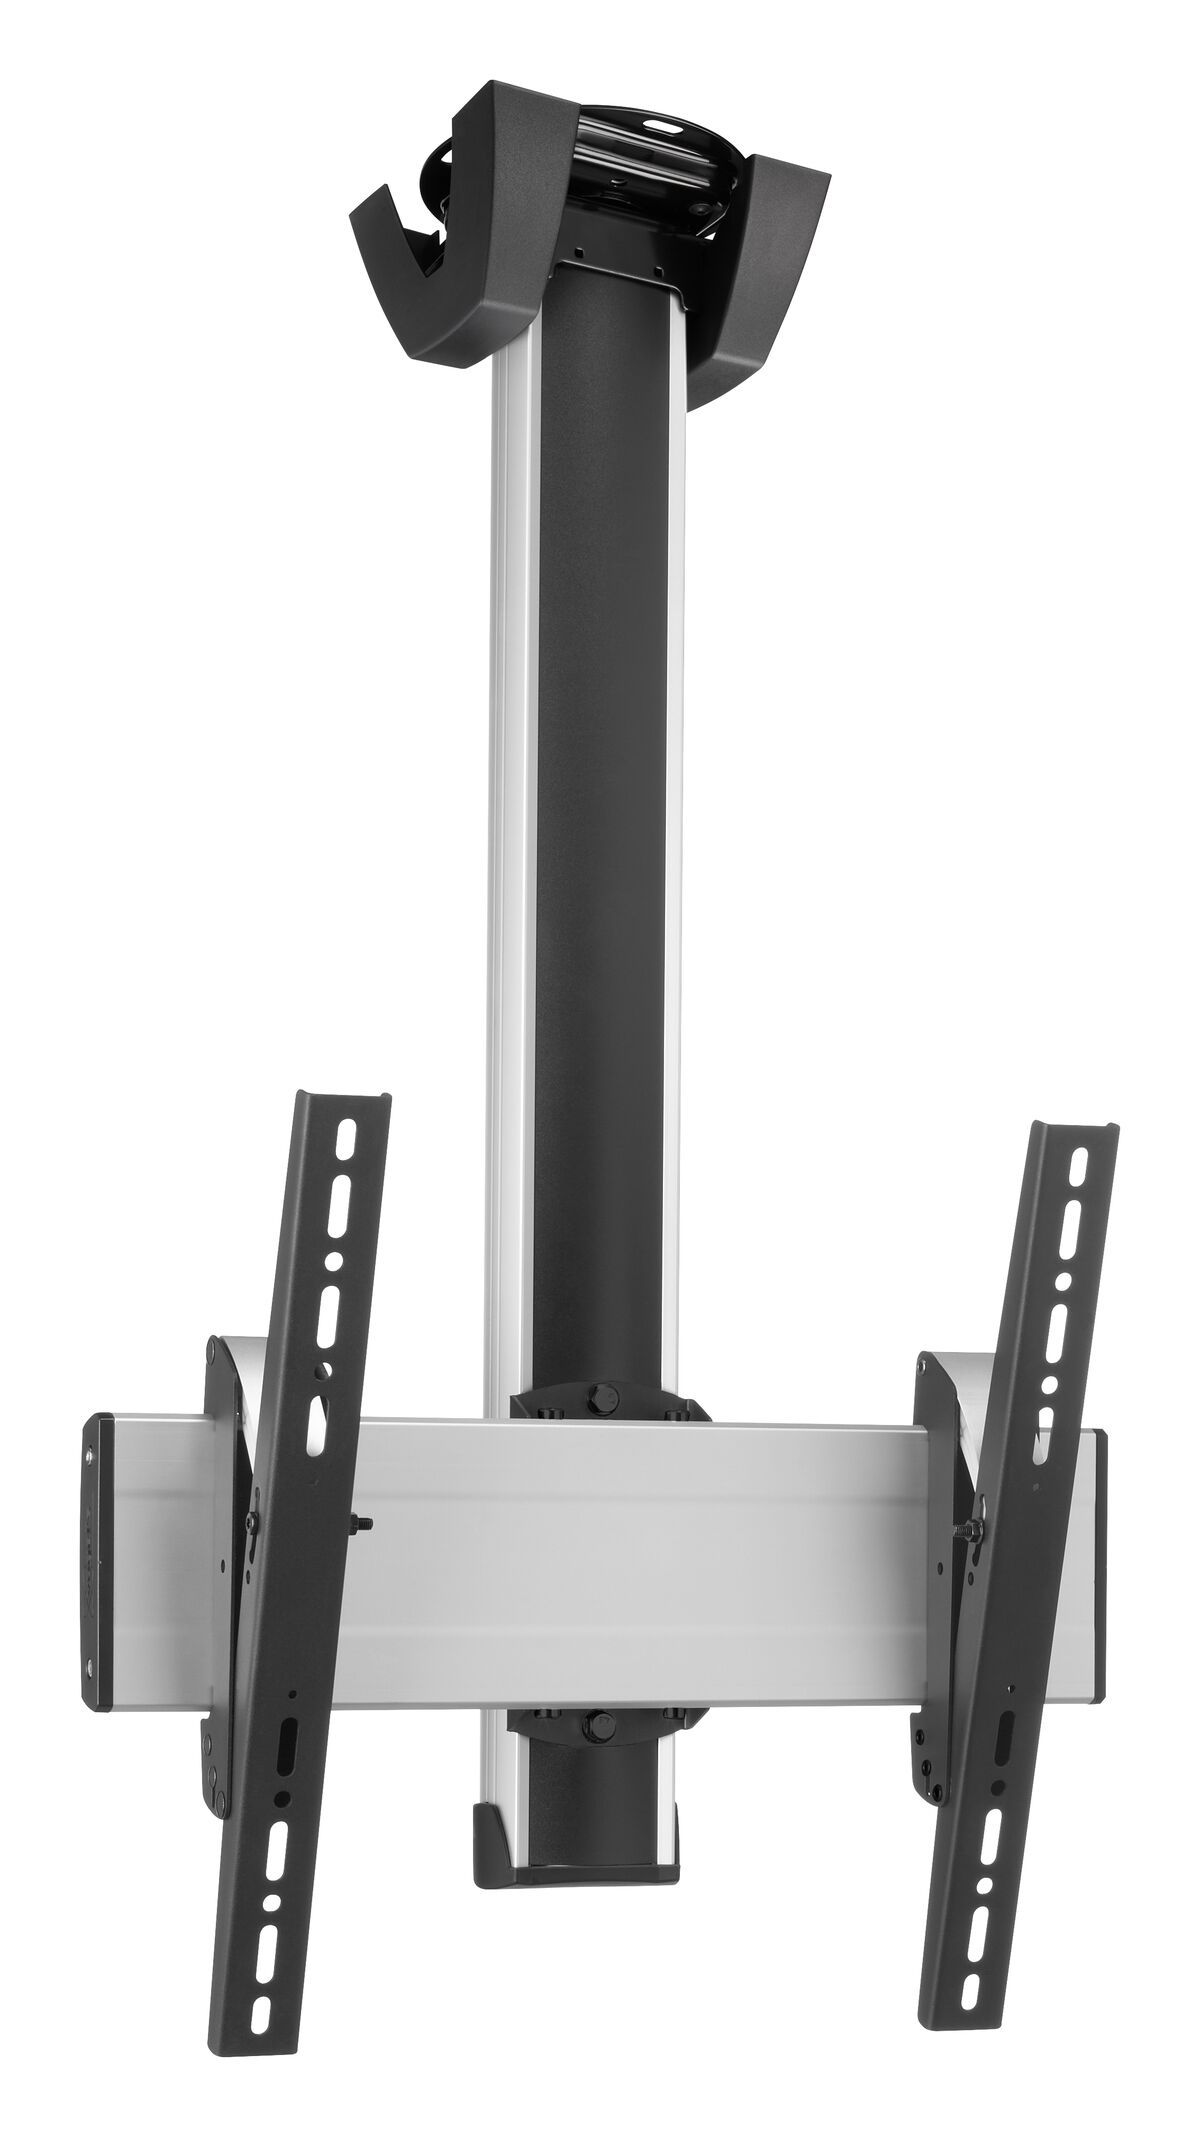 Vogel's CT1544S Ceiling mount rotation function - Product